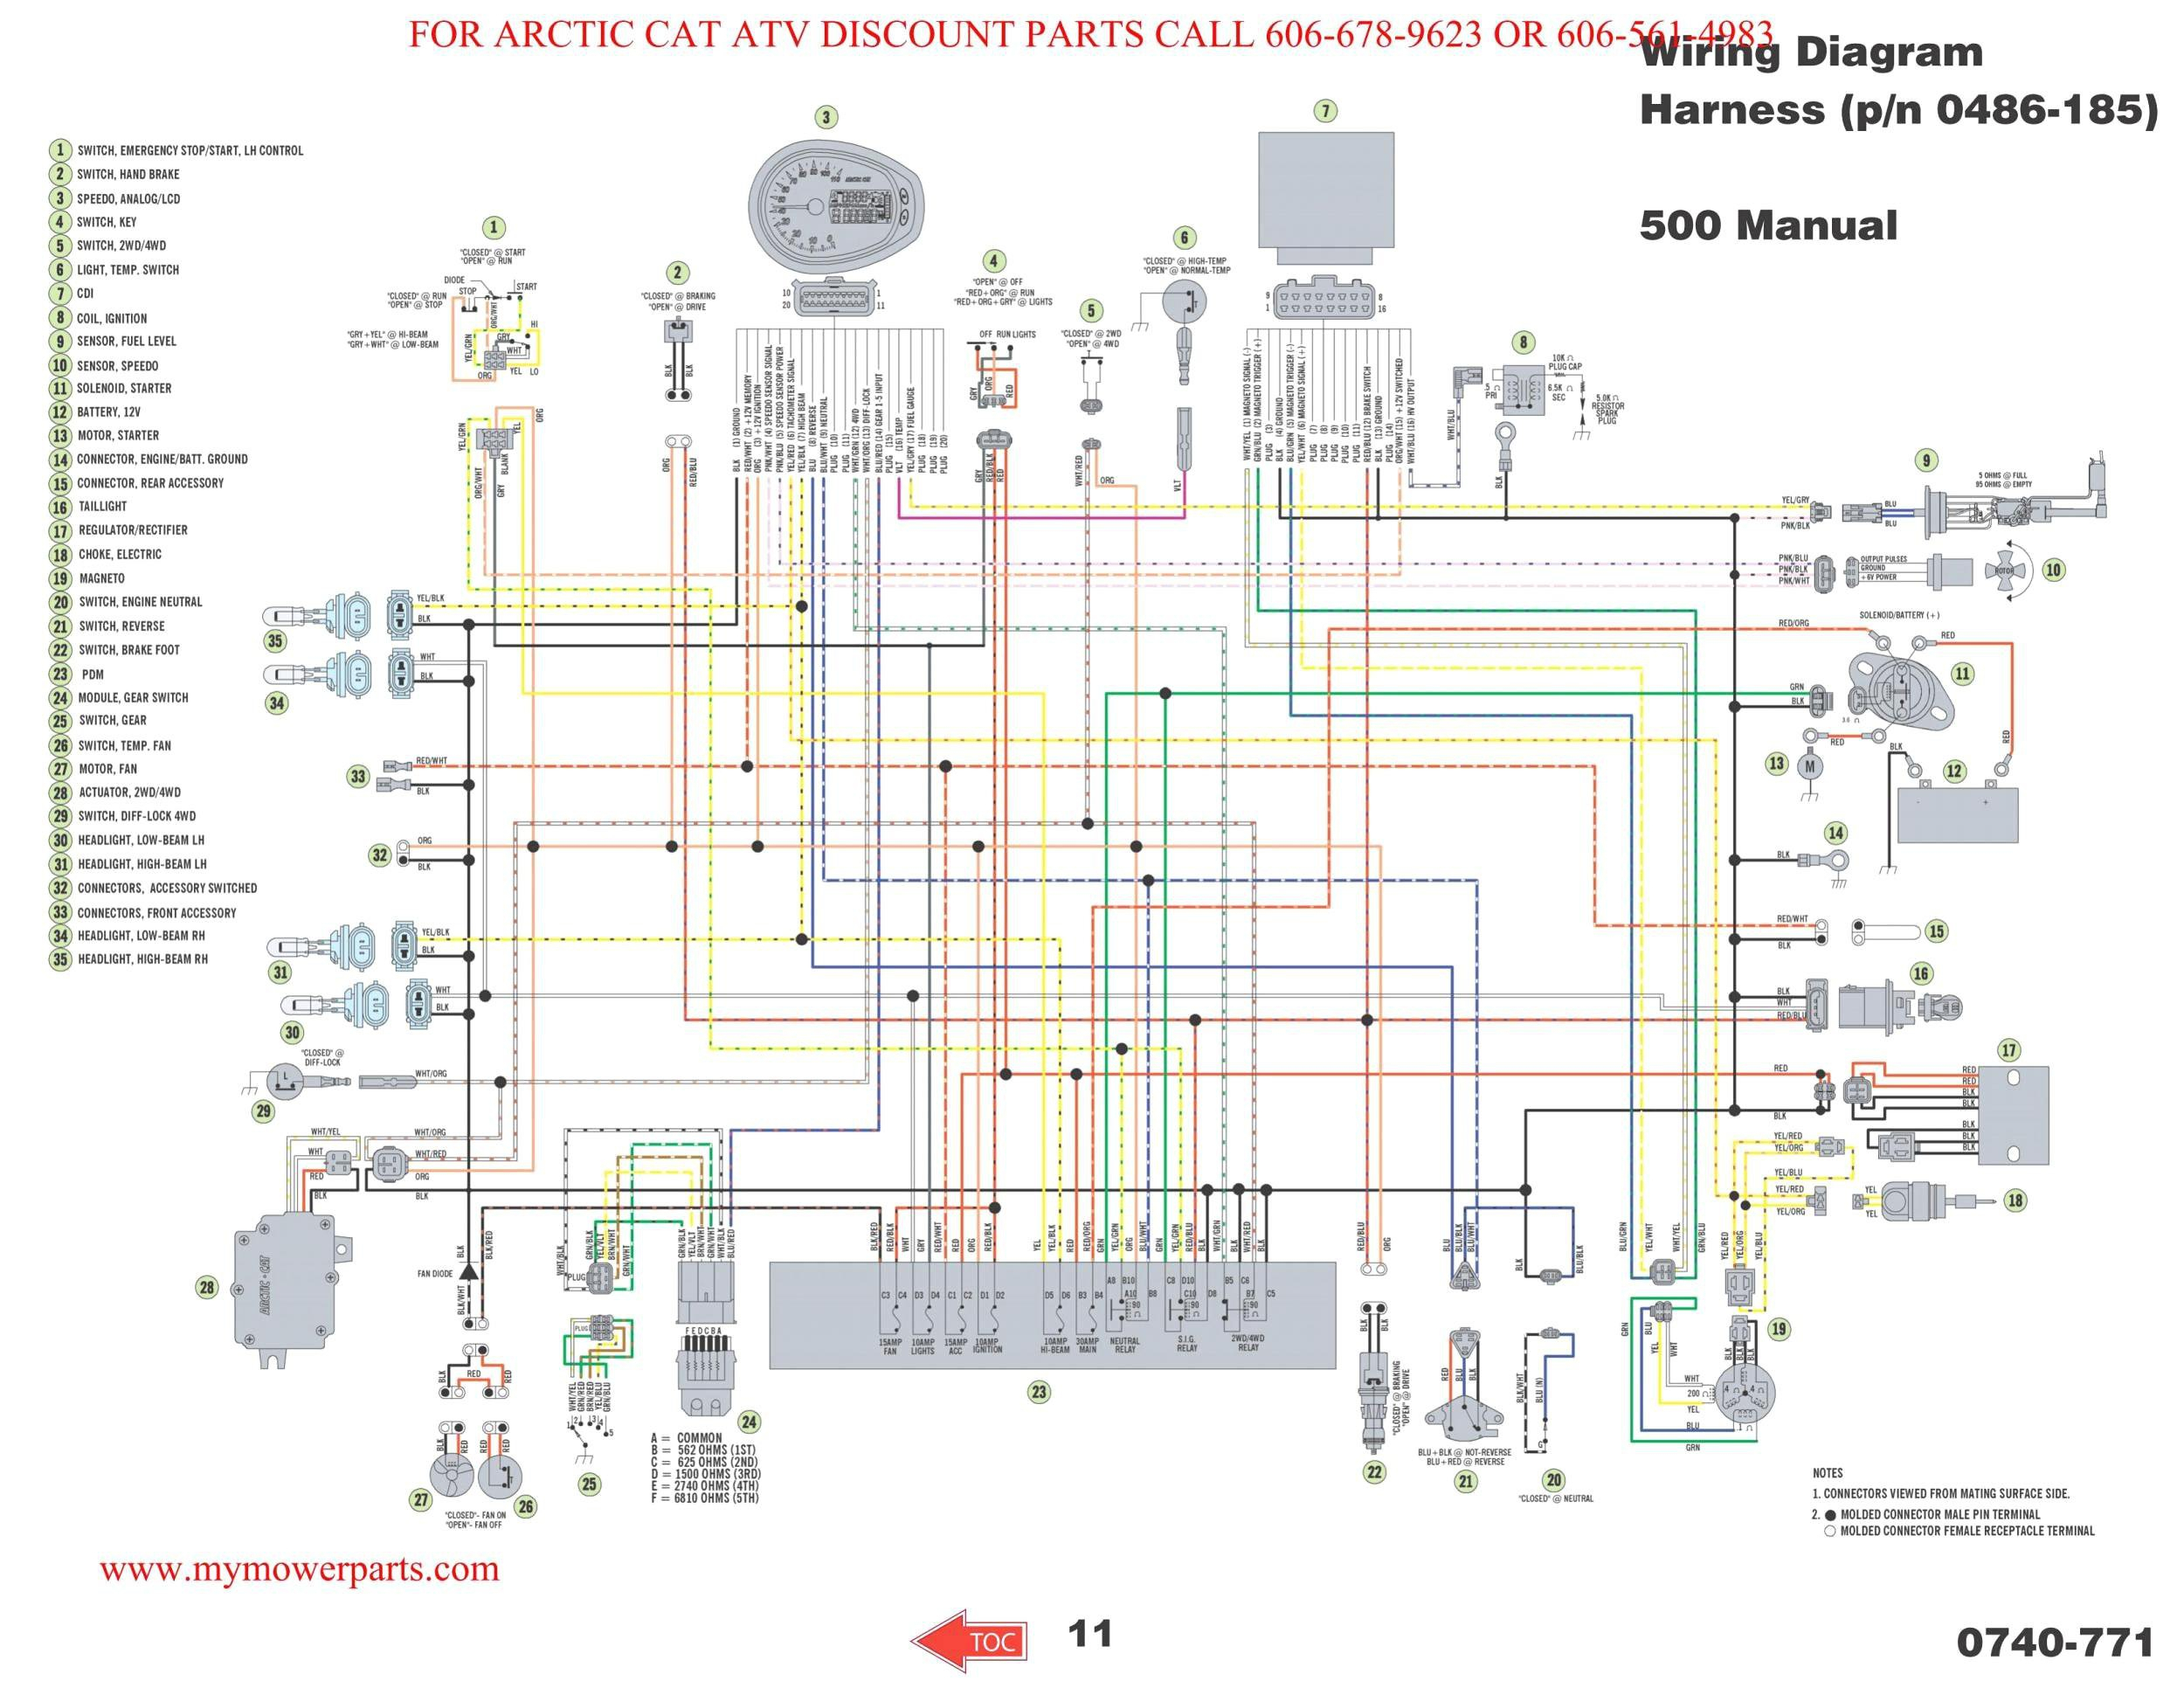 polaris magnum wiring diagram wiring diagrams 2003 polaris ranger 500 wiring diagram wiring diagram for polaris ranger 2000 #3